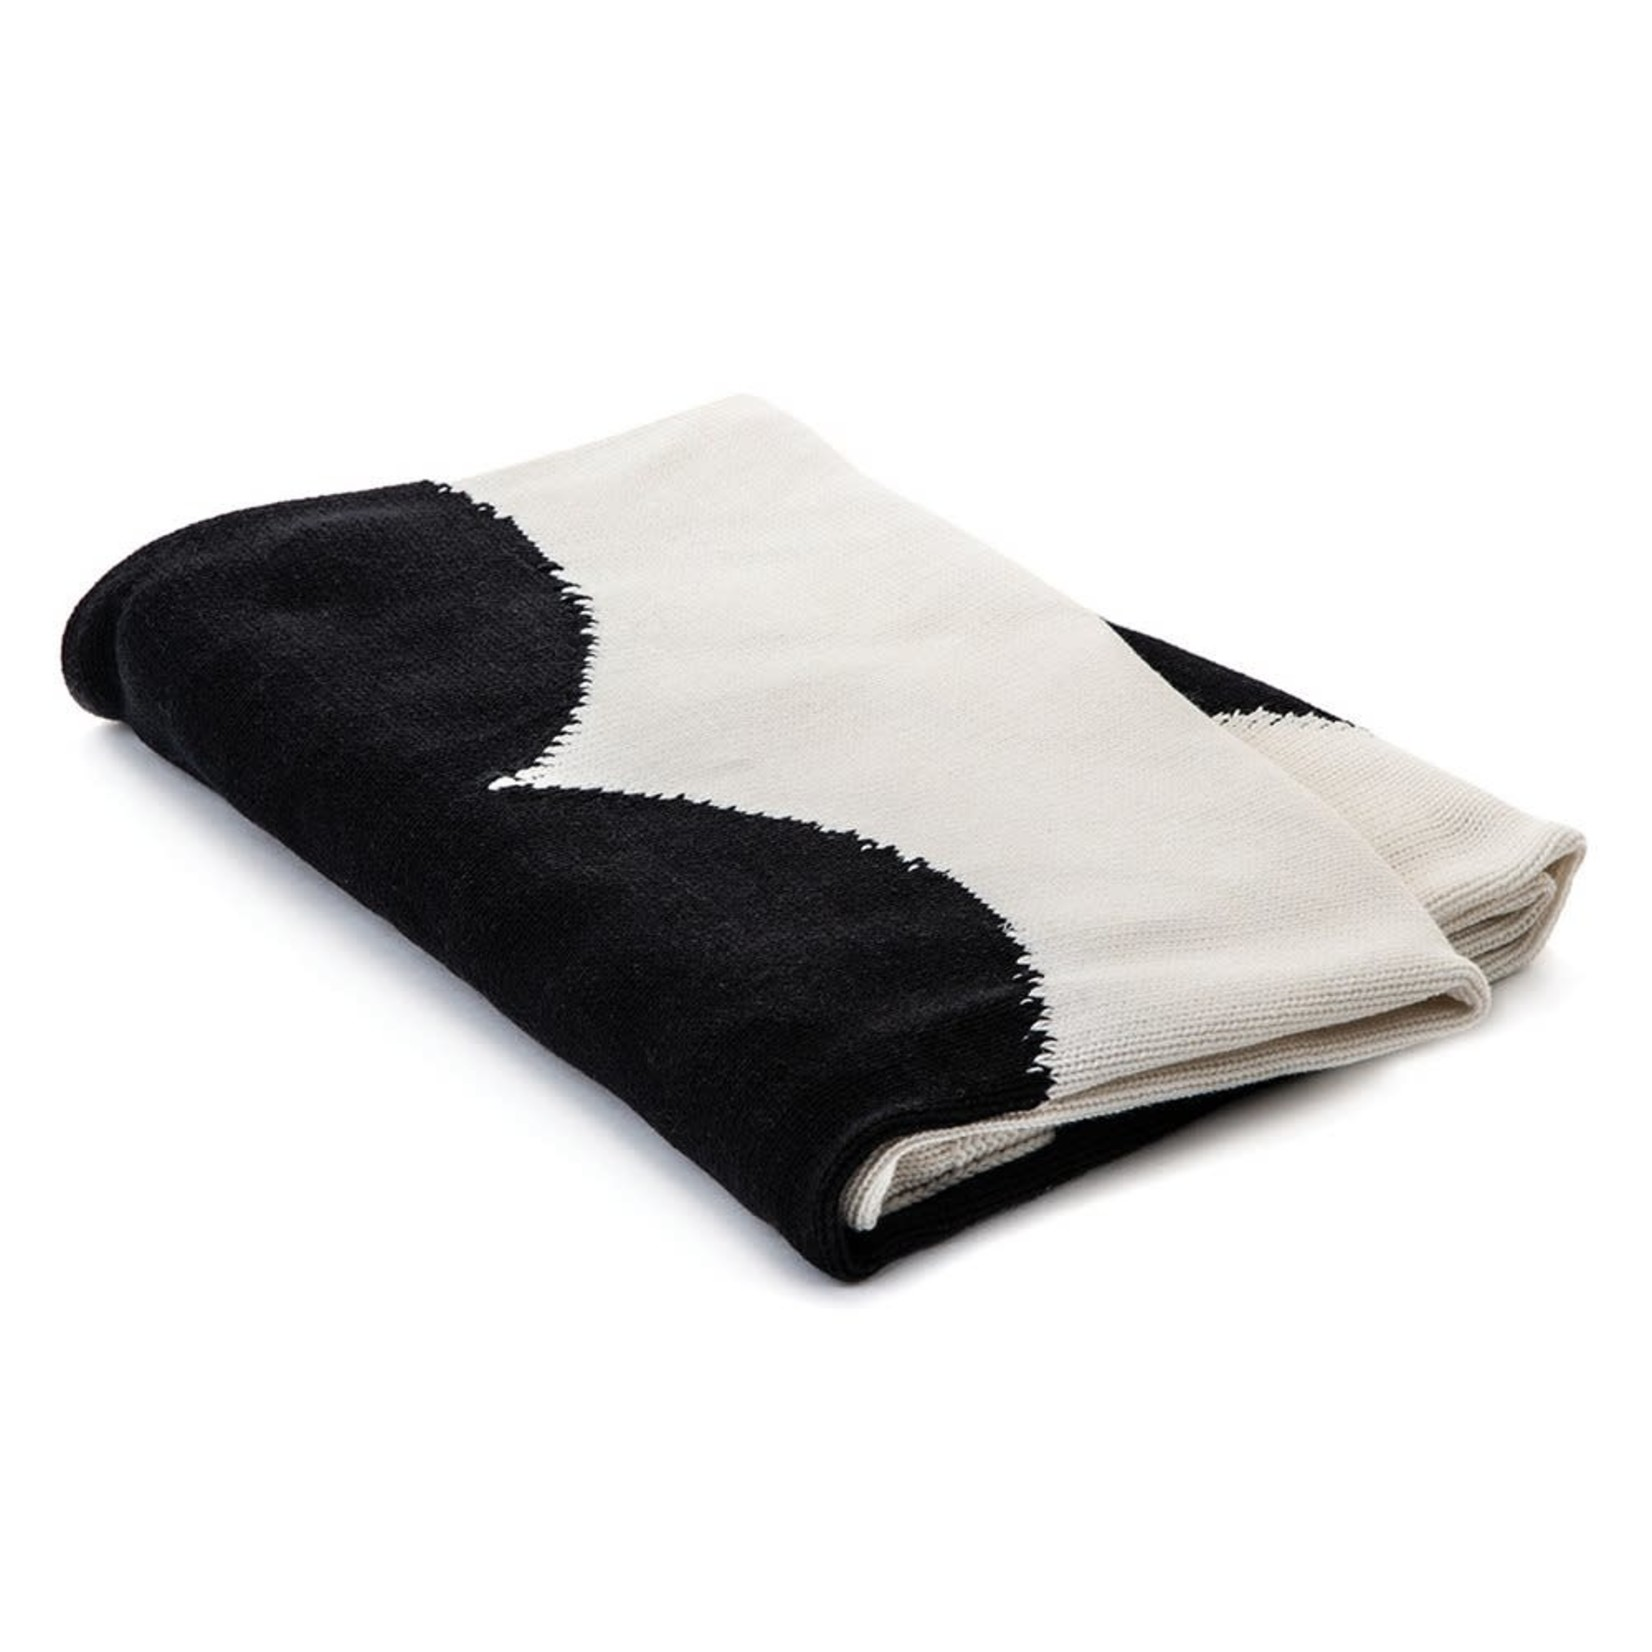 Amoroso Black Heart Blanket